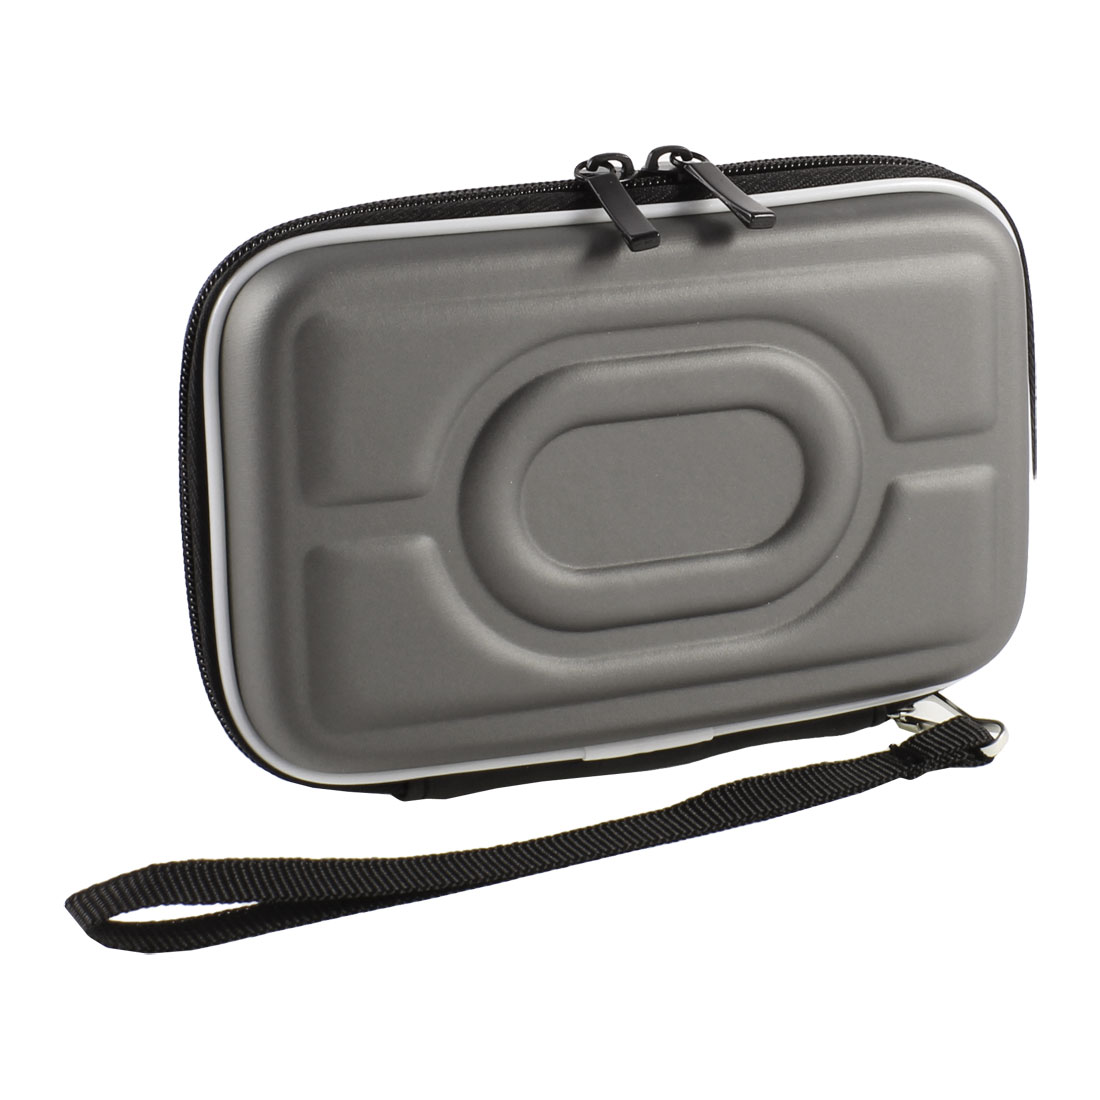 "Zip-up EVA Carrying Case Sleeve Bag Pouch Gray for 2.5"" HDD Hard Drive Disk"